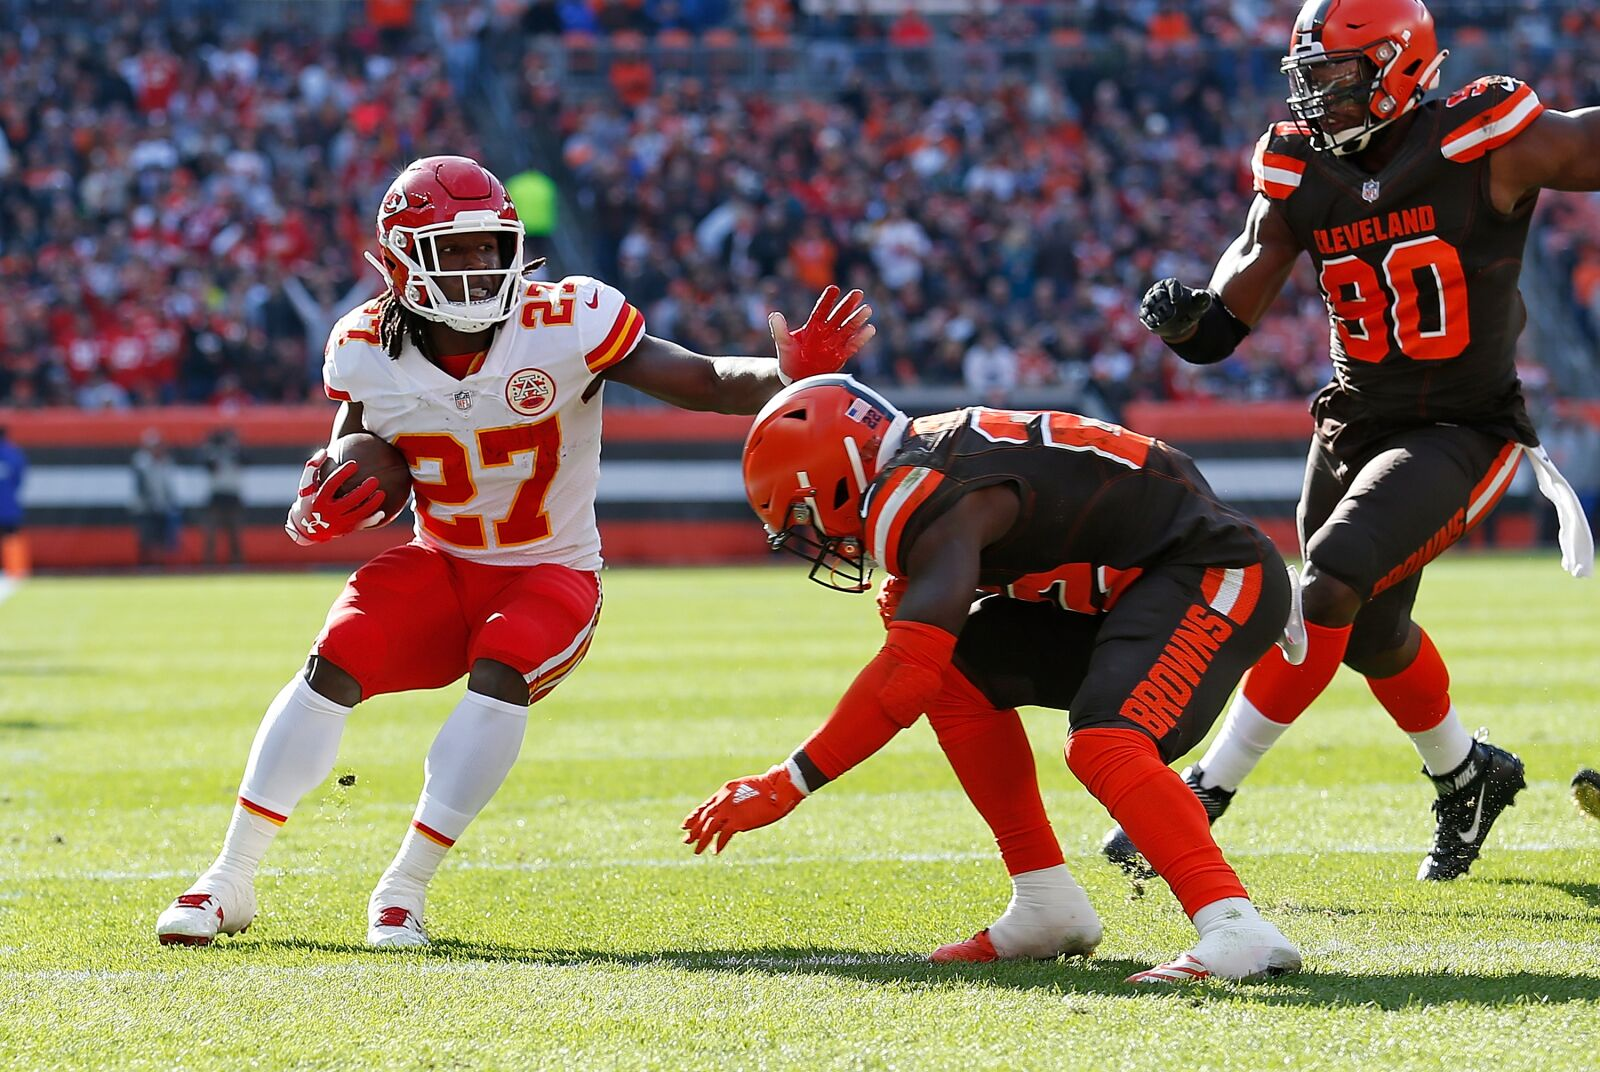 Cleveland Browns: Kareem Hunt returns to practice